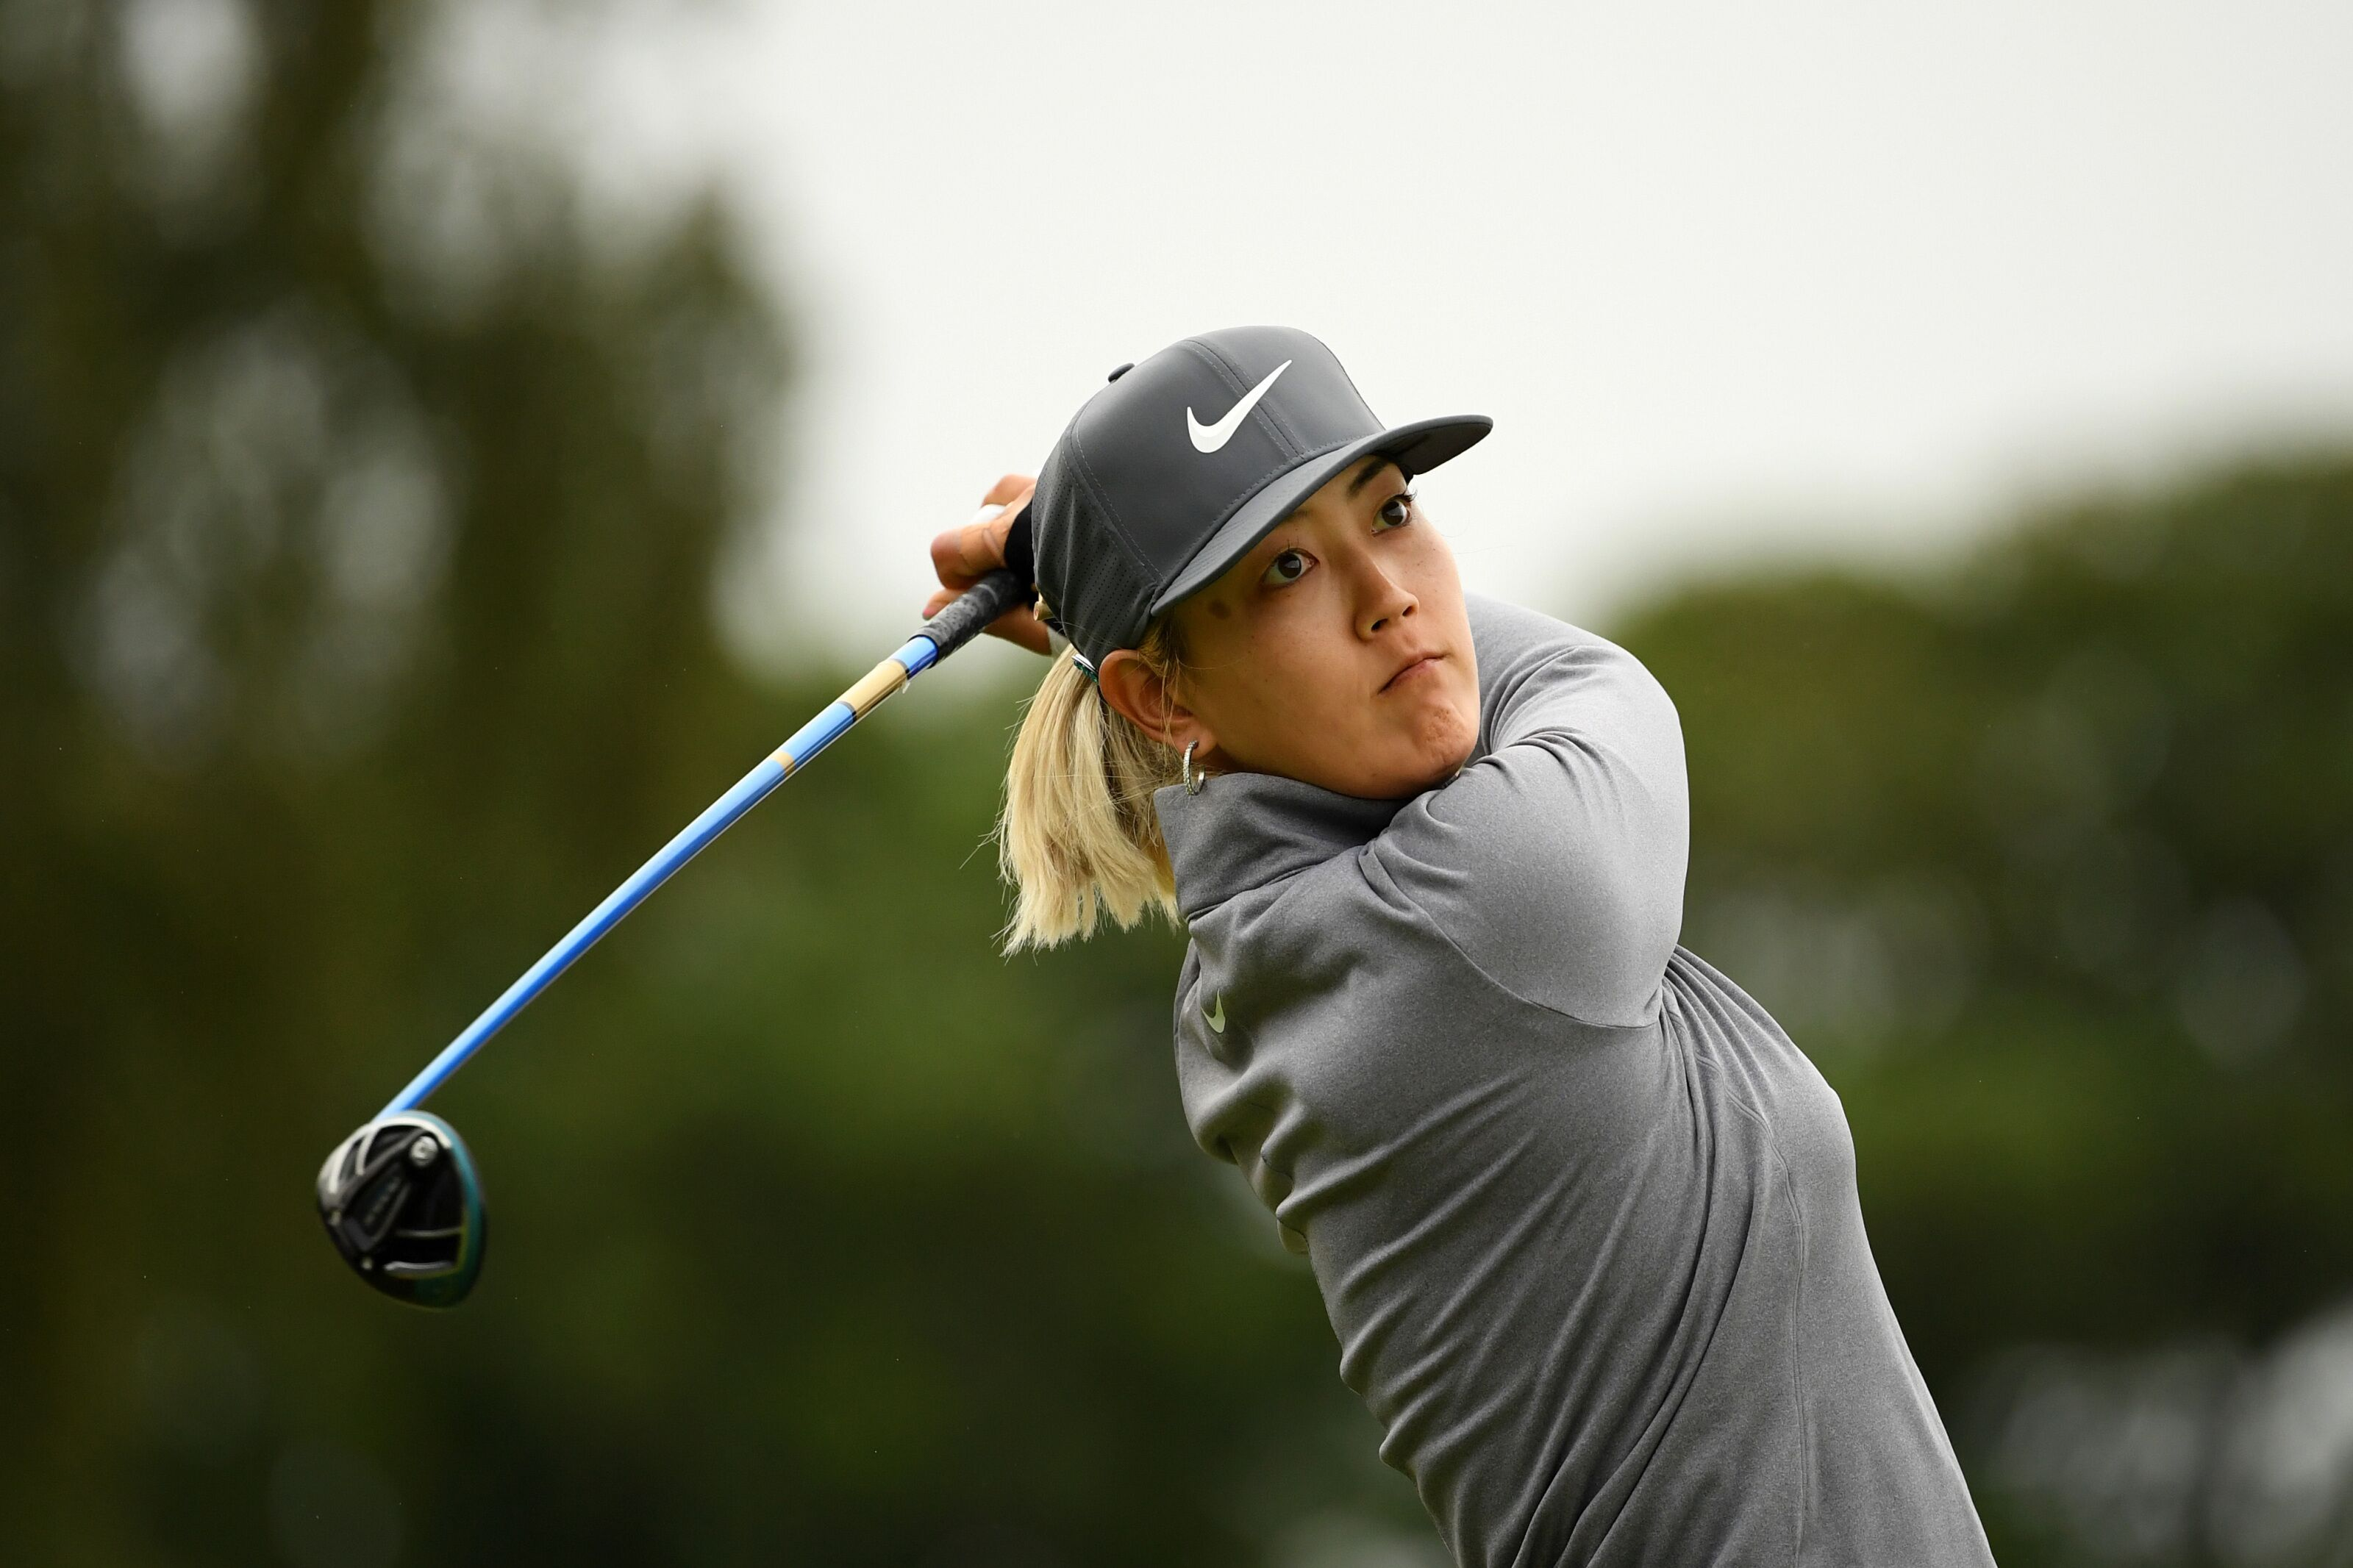 Michelle Wie: MIA at CP Women's Open. What about International Crown?